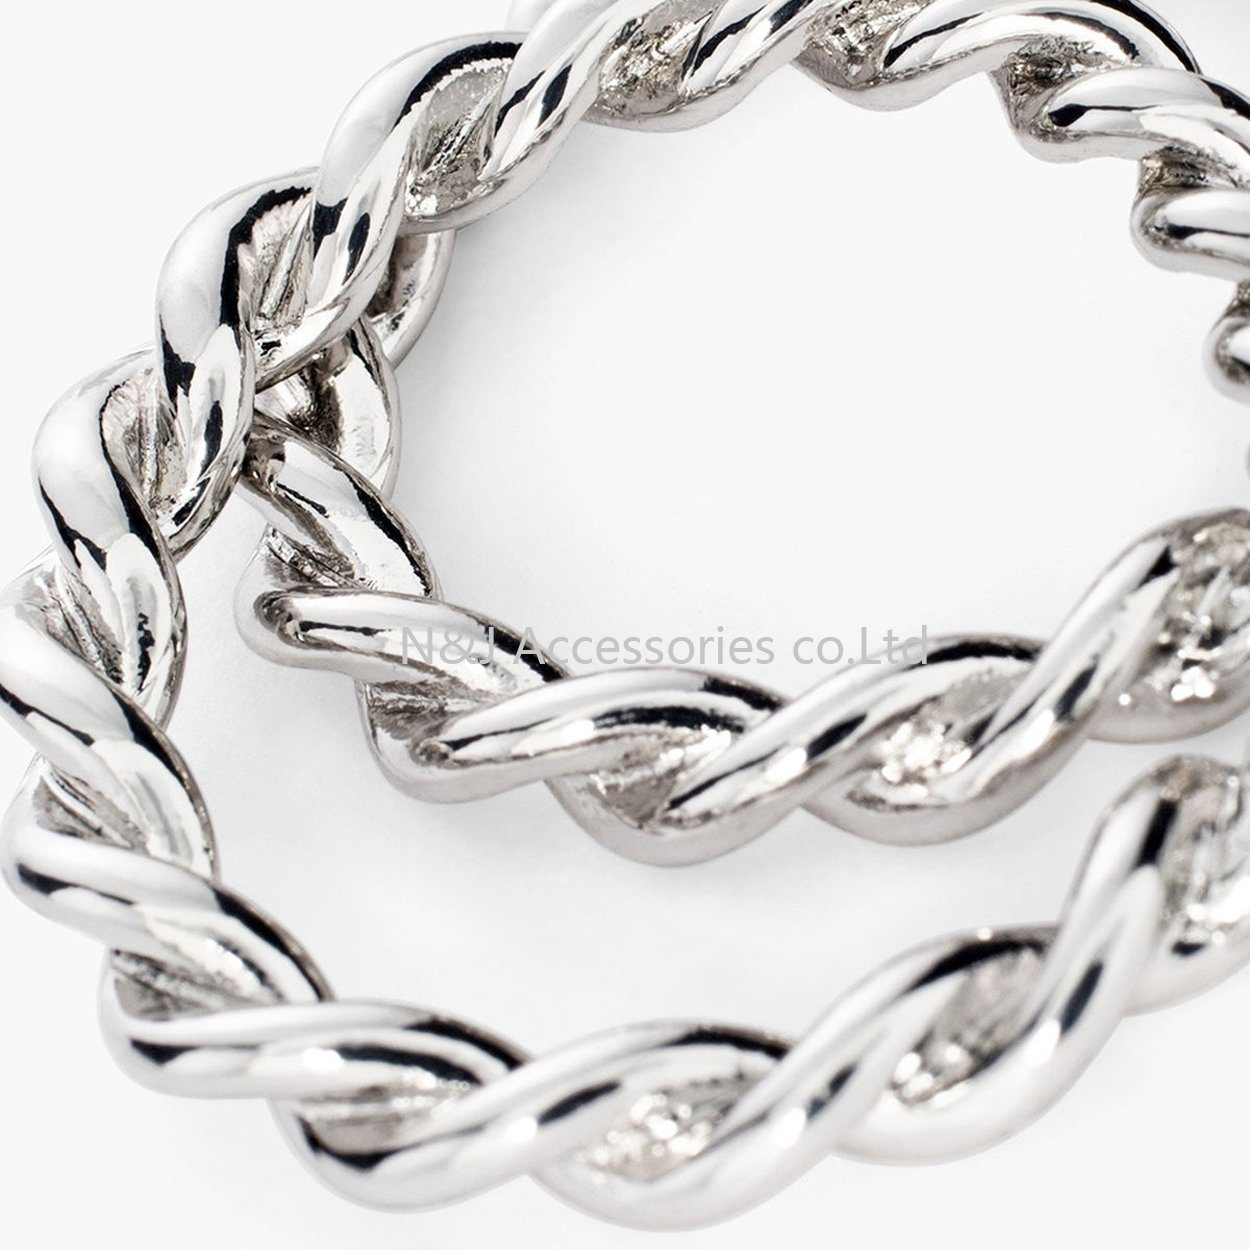 Punk Hoop Earrings Silver Plated Fashion Jewelry Wholesale Twisted Round Earrings for Women